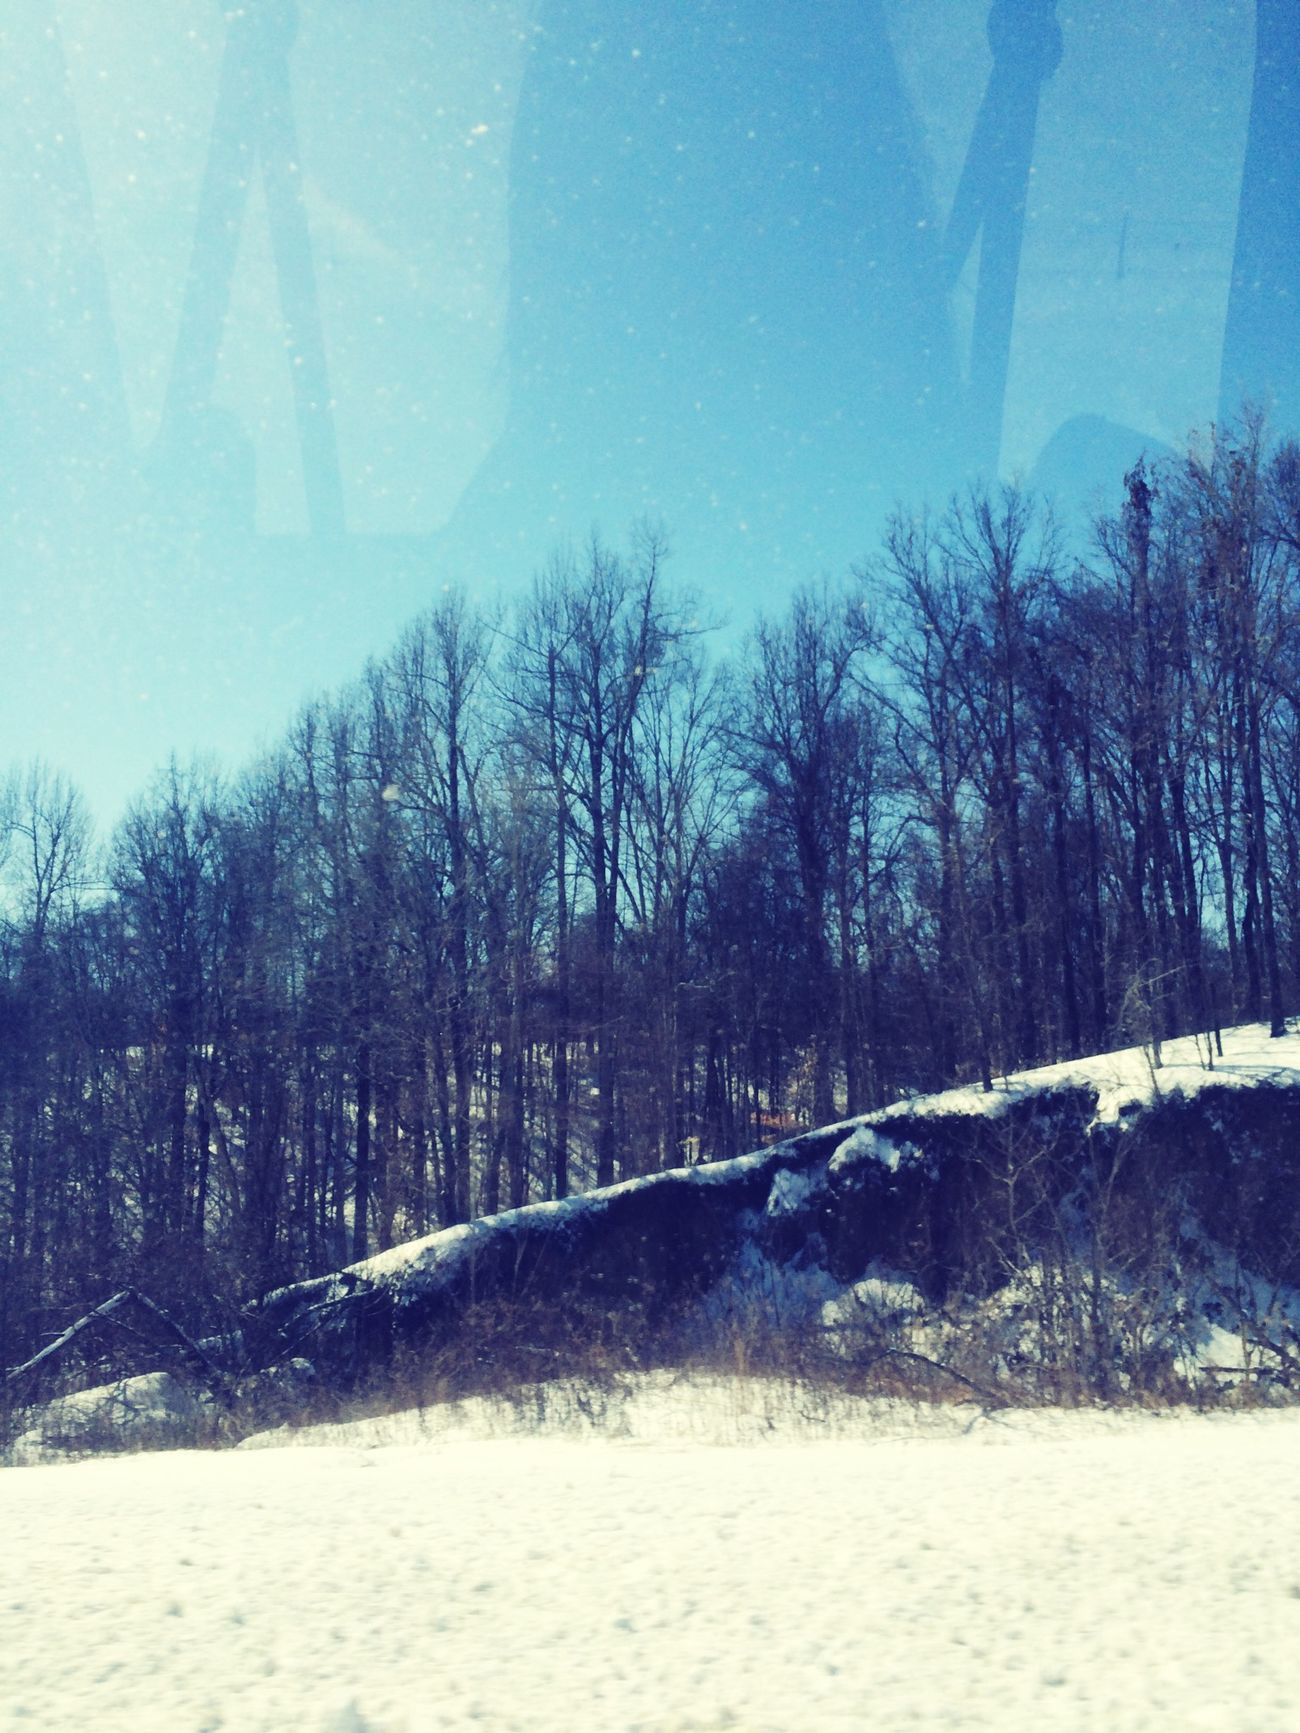 Driving to Chattanooga TN coming from Sikeston MO, takin I55:) Trees Snow Traveling Bored I Miss Him :(  Fun?